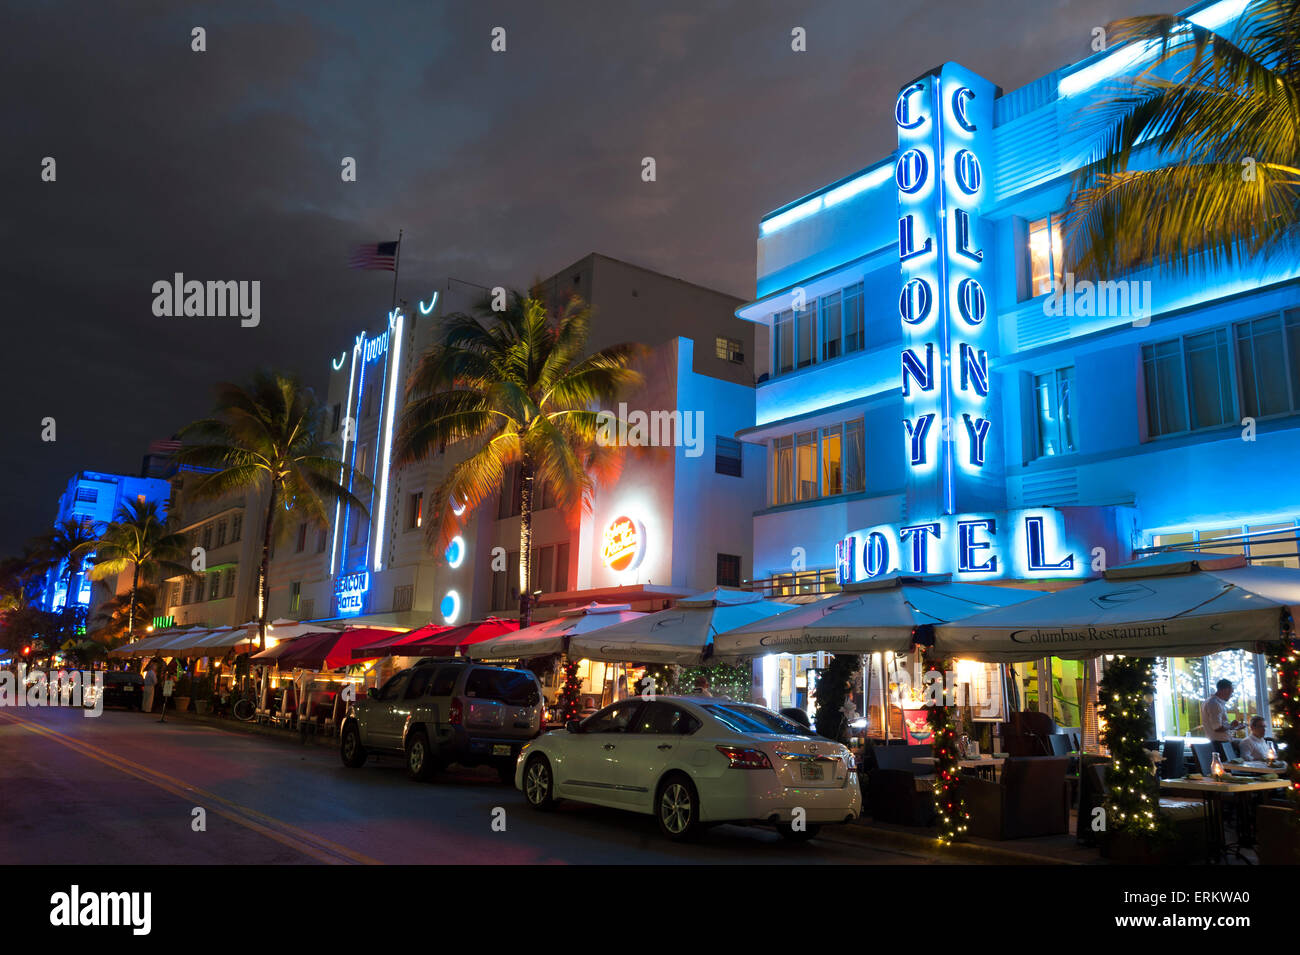 Colony Hotel, Ocean Drive, South Beach, Miami Beach, Florida, United States of America, North America - Stock Image